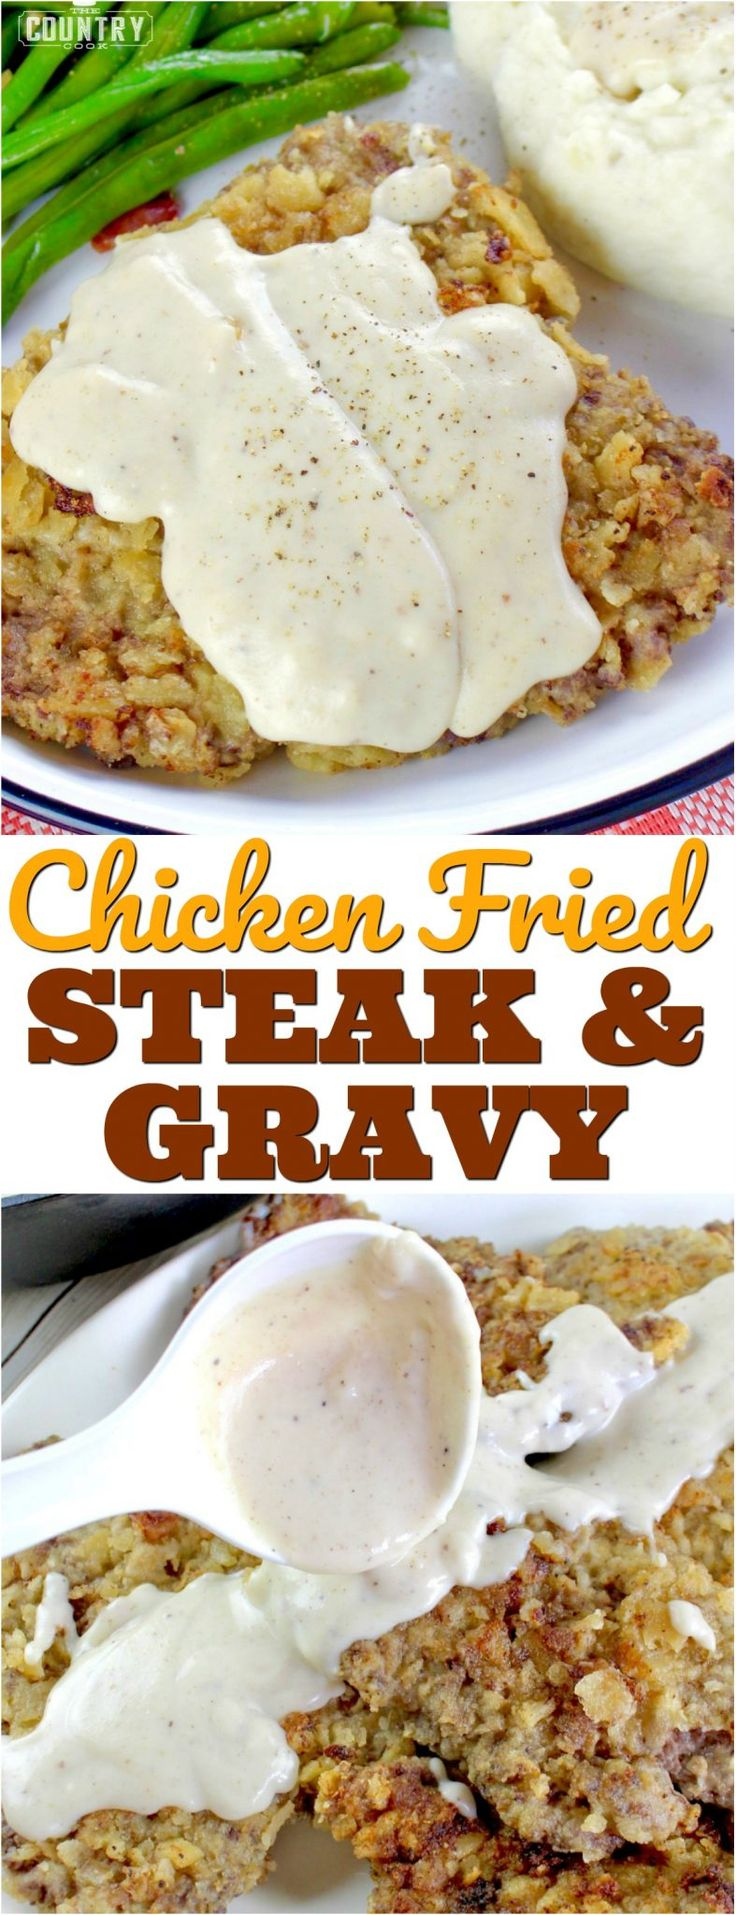 Chicken Fried Steaks with Sawmill Gravy recipe from The Country Cook